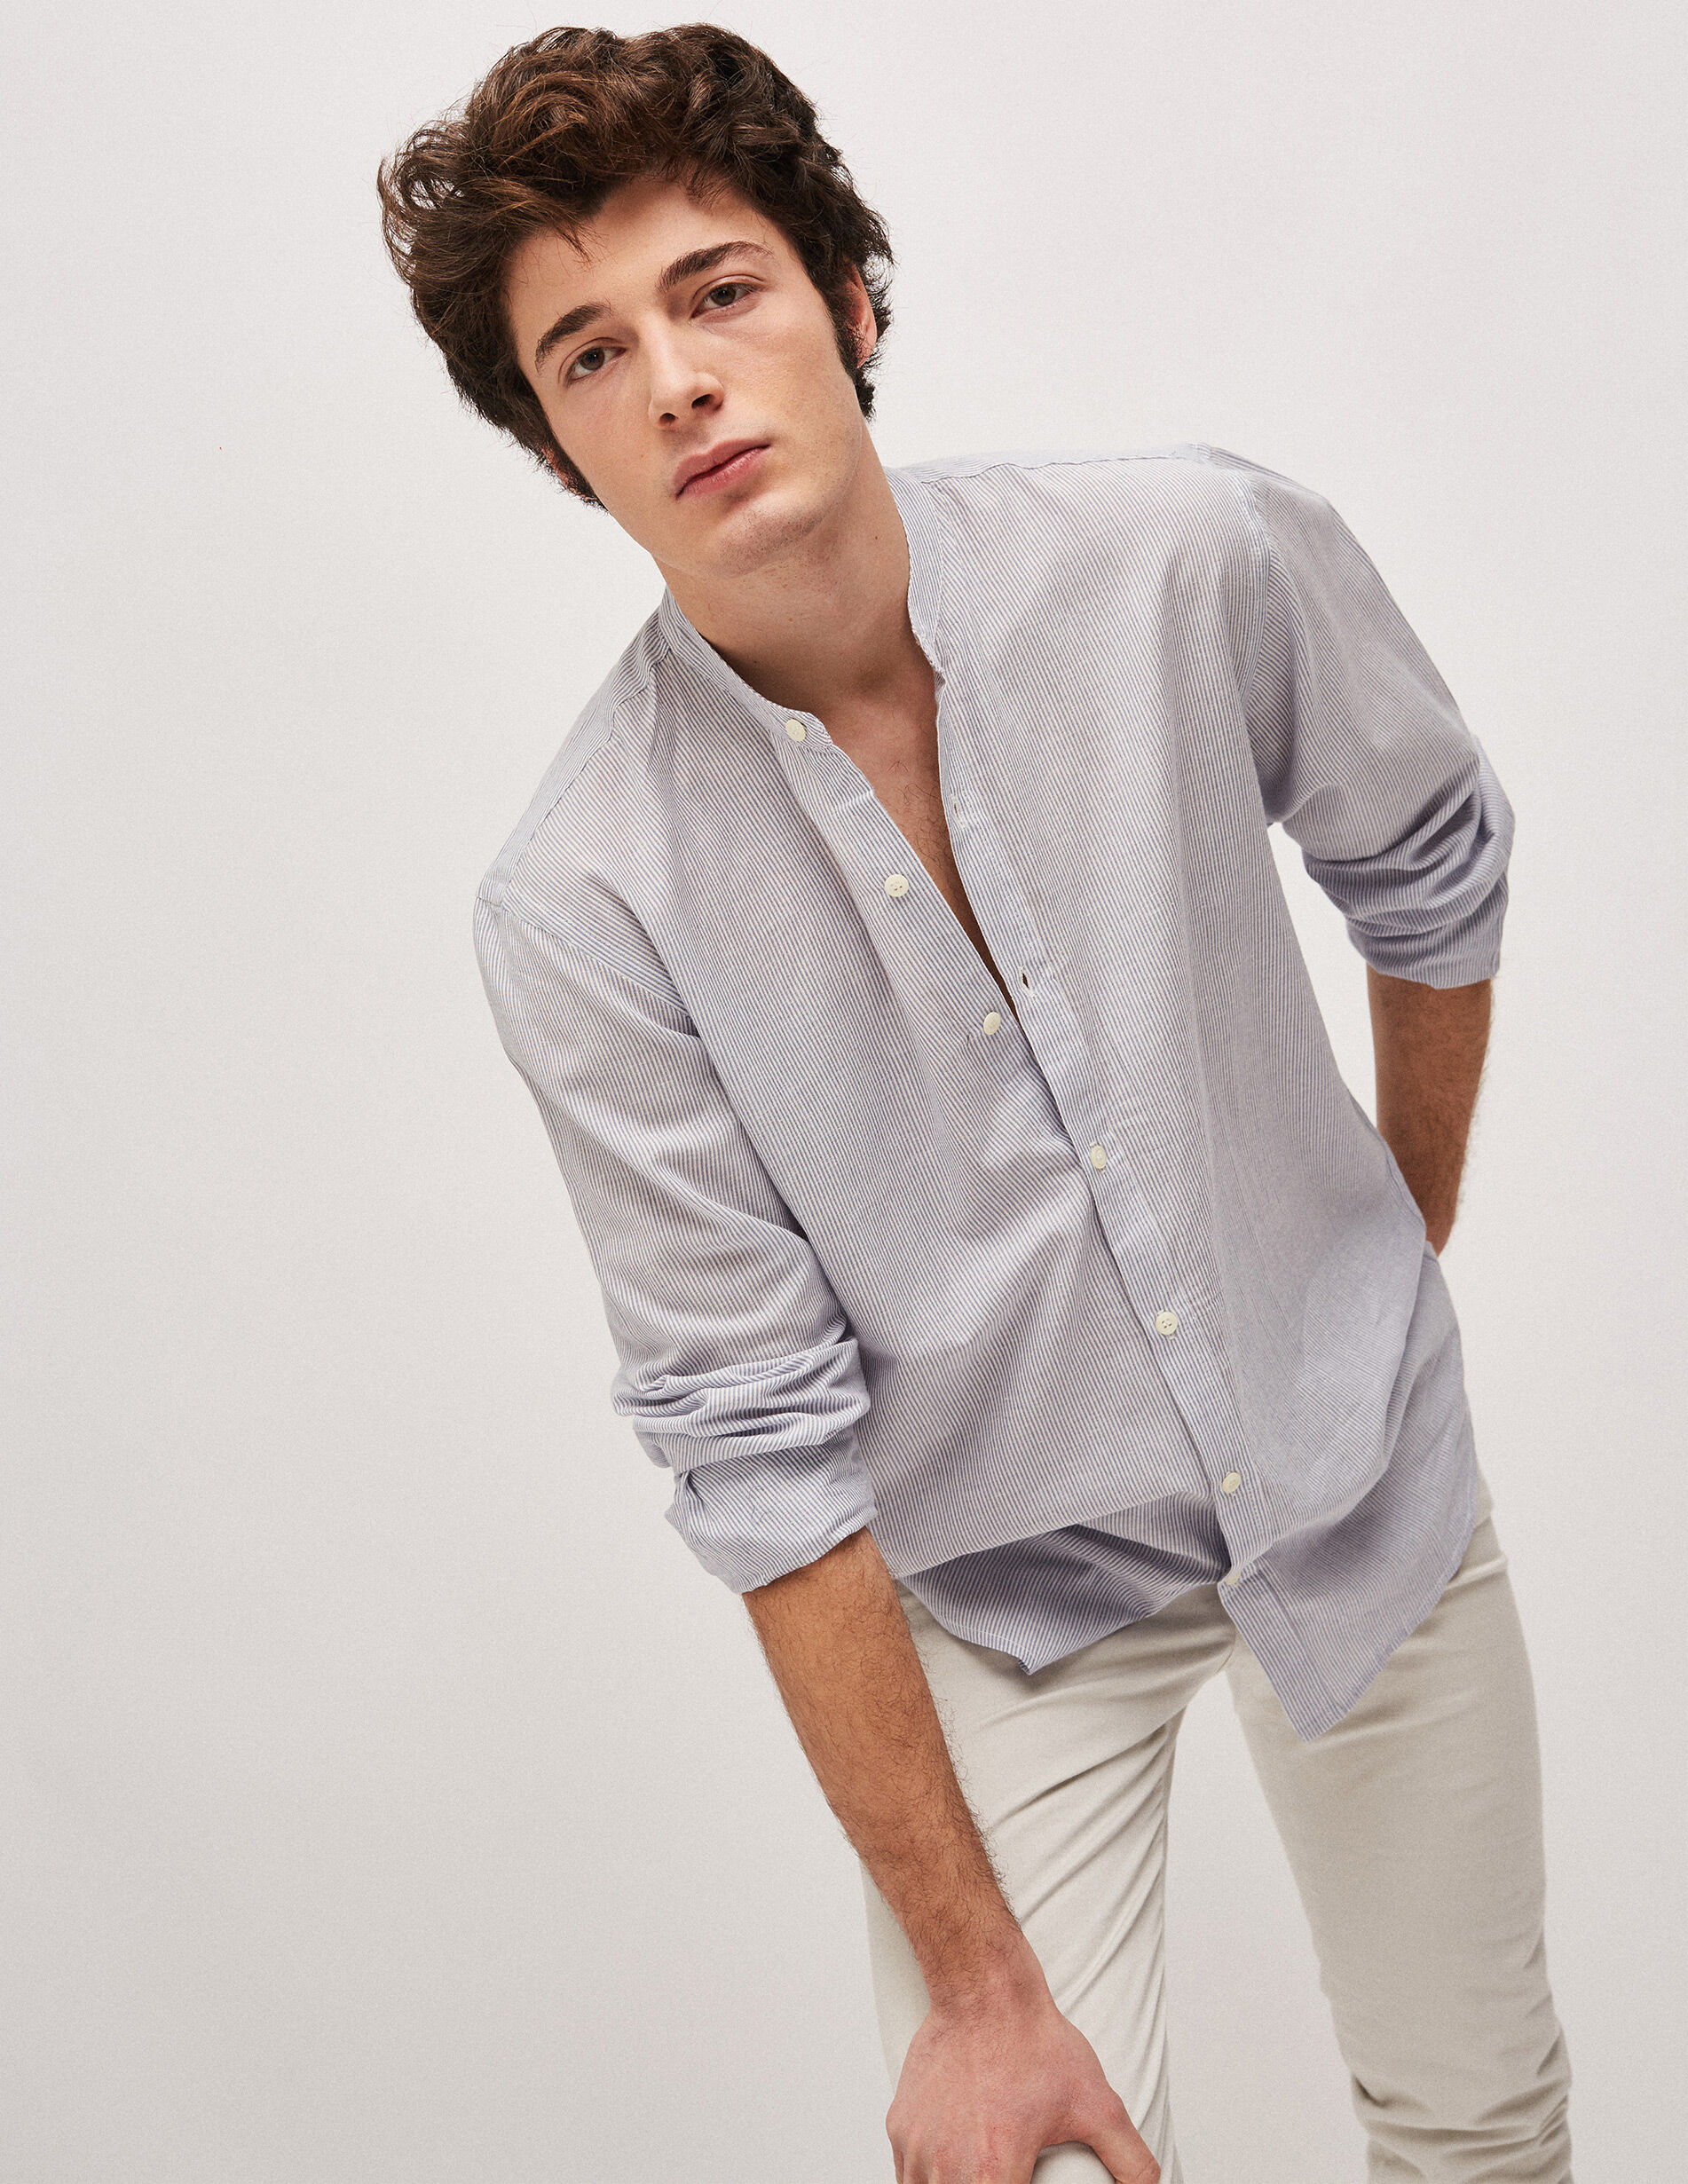 Fines Homme Chemise Col Mao Rayures WEH9D2YI